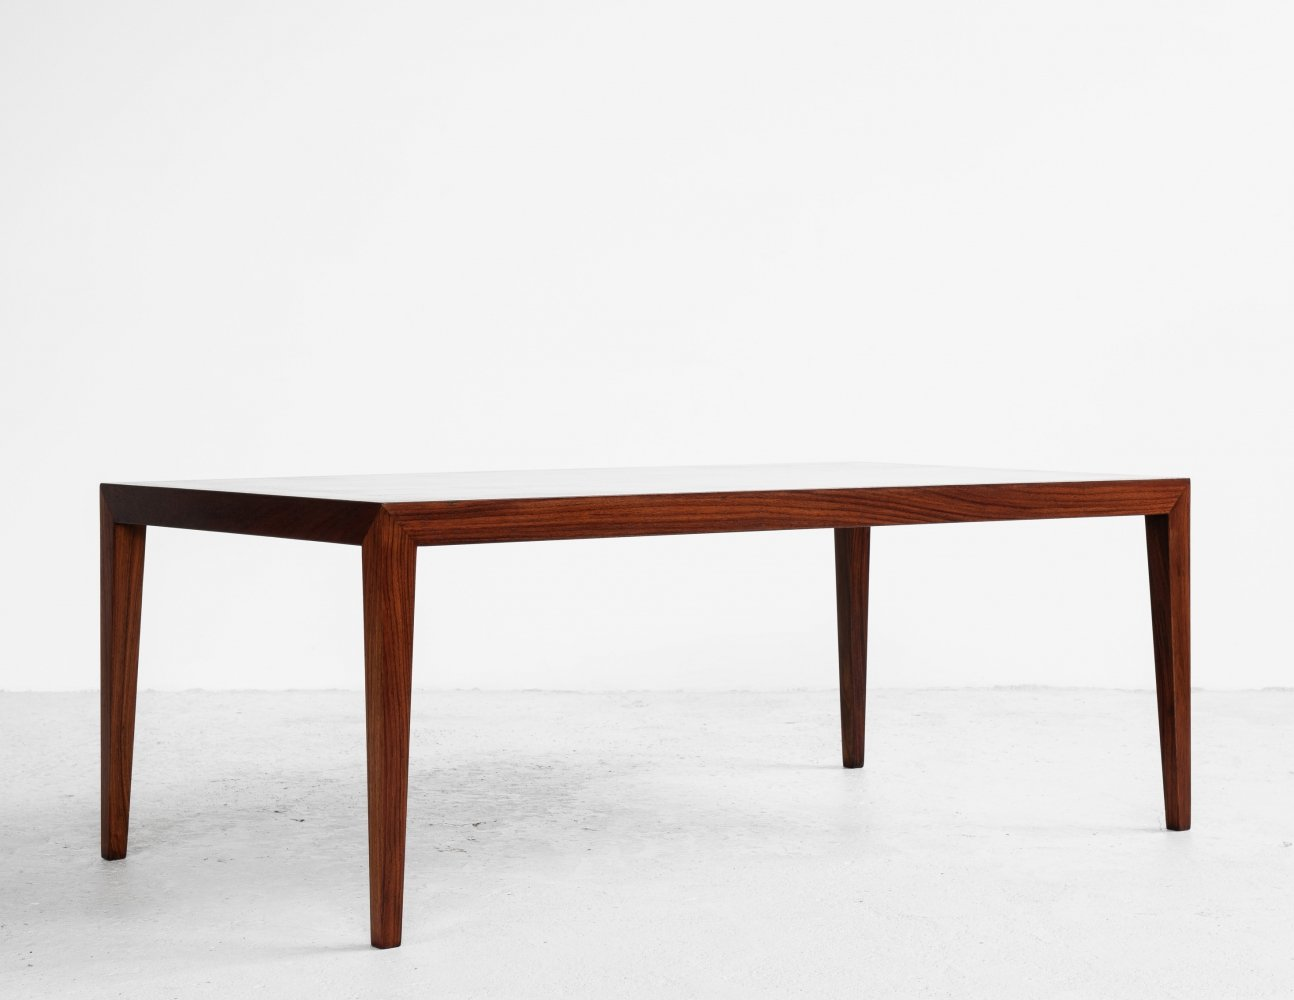 Midcentury Danish coffee table in rosewood by Severin Hansen for Haslev